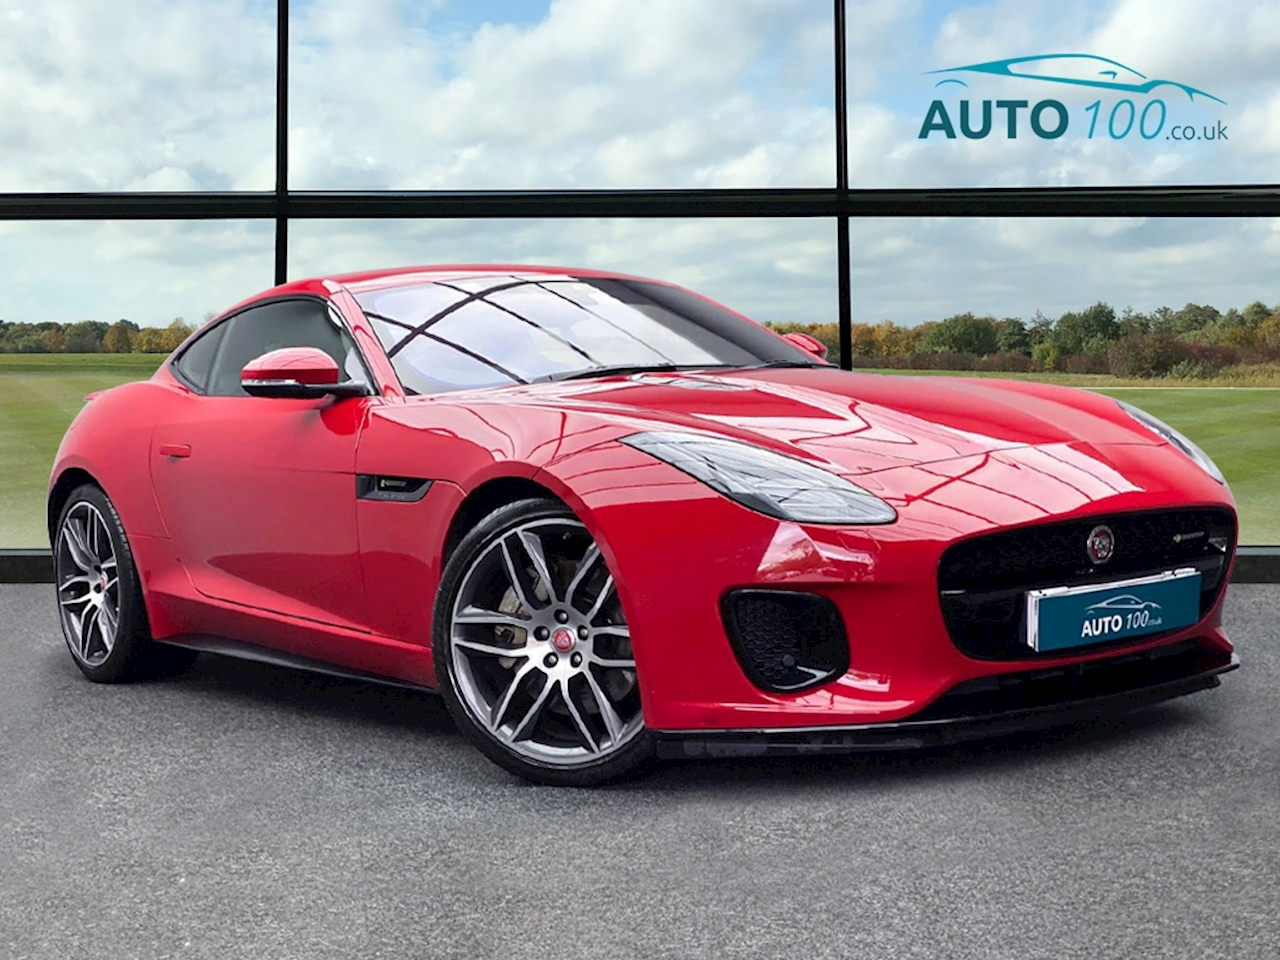 Jaguar F-Type R-Dynamic Coupe 2.0 Auto Petrol